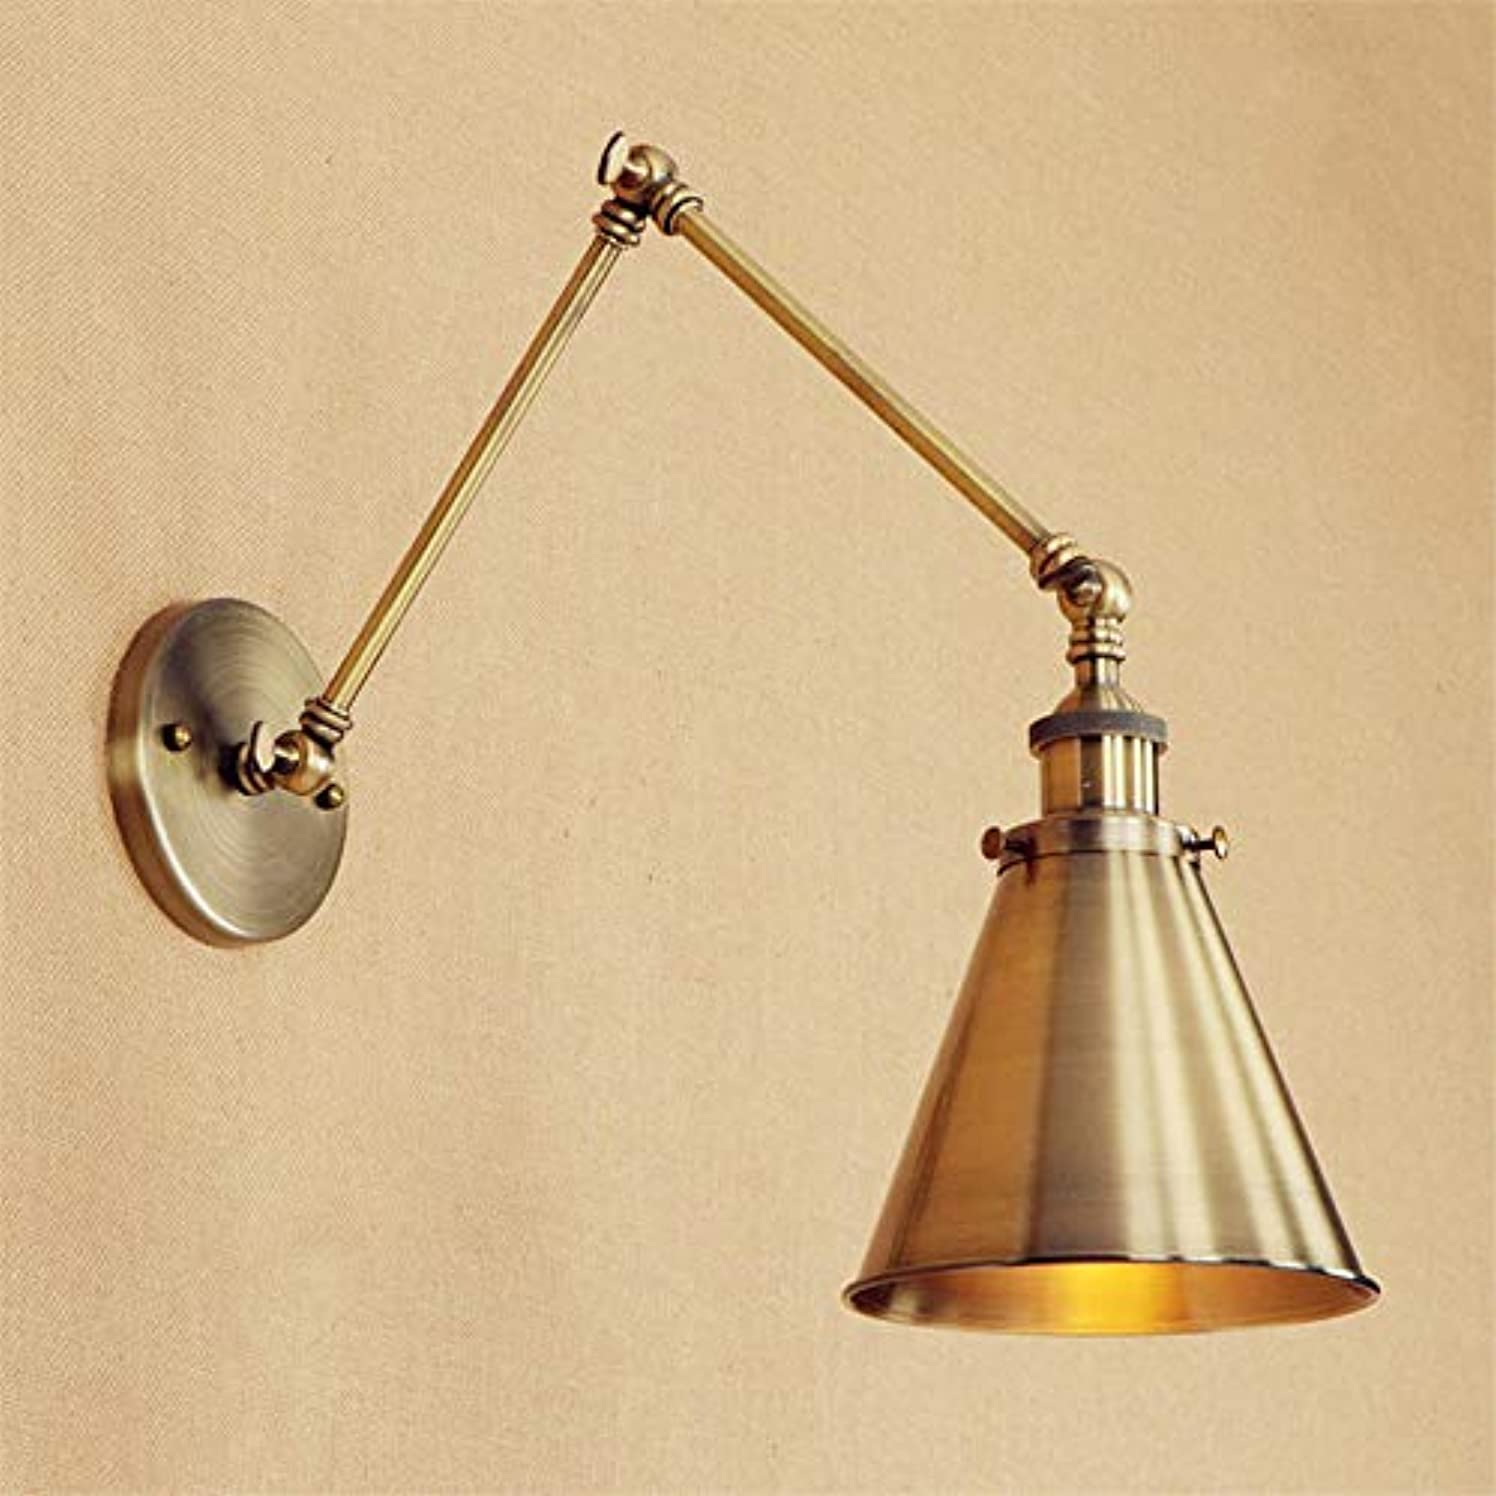 Rishx Vintage Swing Long Arm Wall Light Fixture Adjustable Loft Retro Brass LED Edison Wall Lamp Sconce Industrial Antique Metal E27 Stair Home Lighting (Size : 30+30cm)